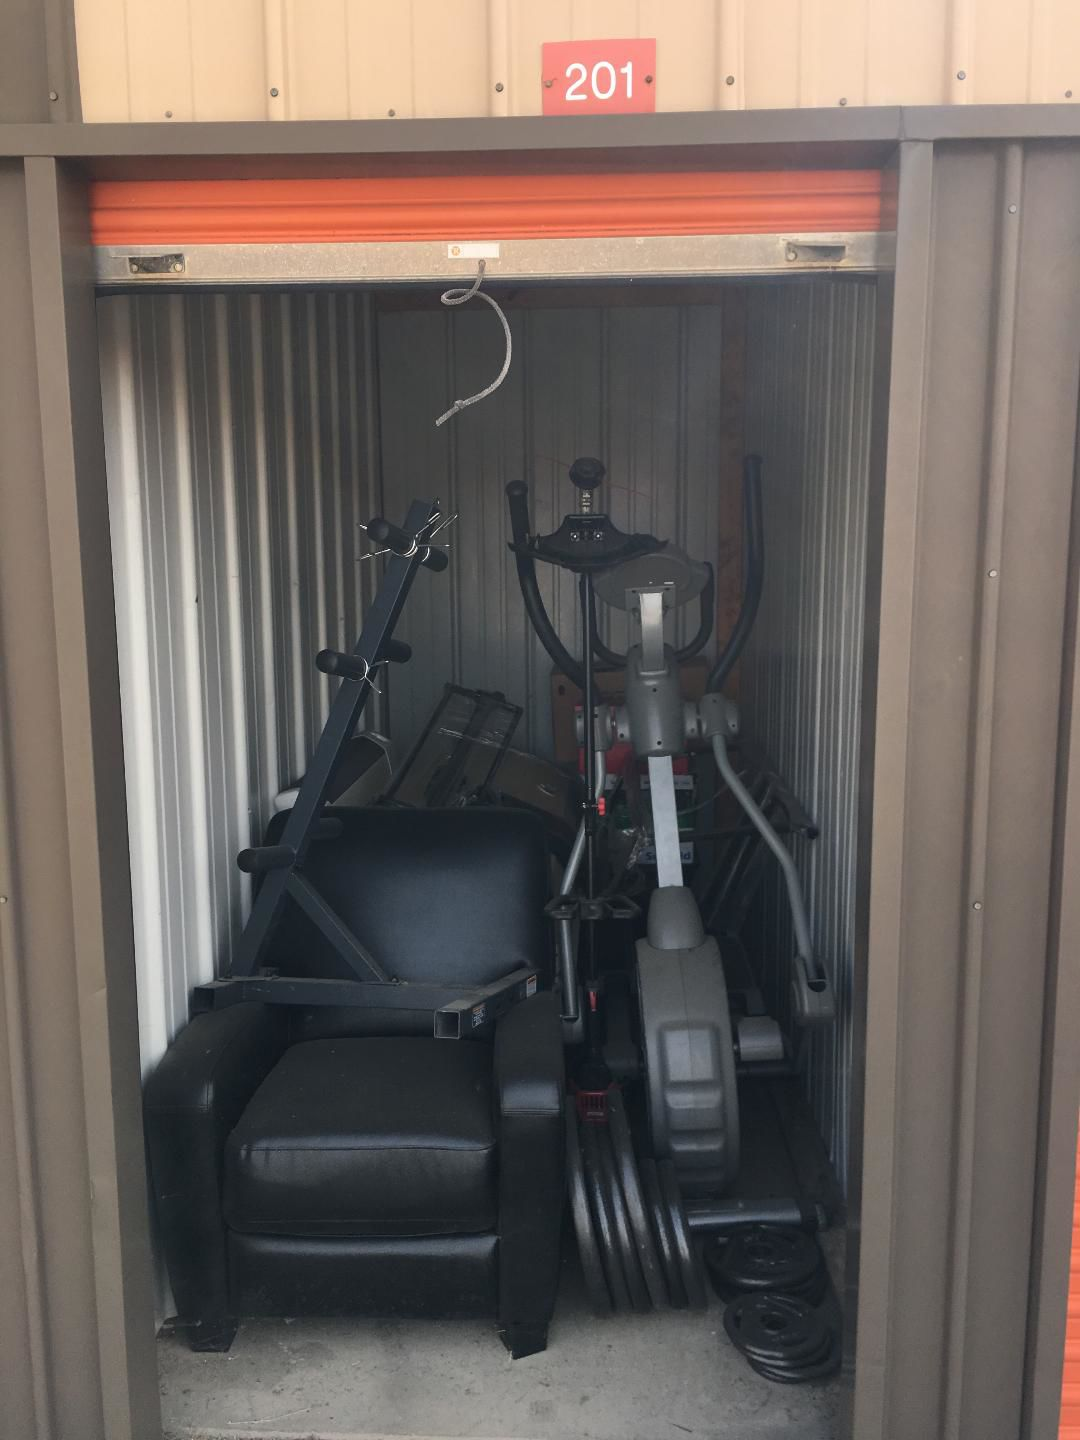 Exercise equipment, tv, motor scooter available at Lock It Up Storage Auctions on May 10